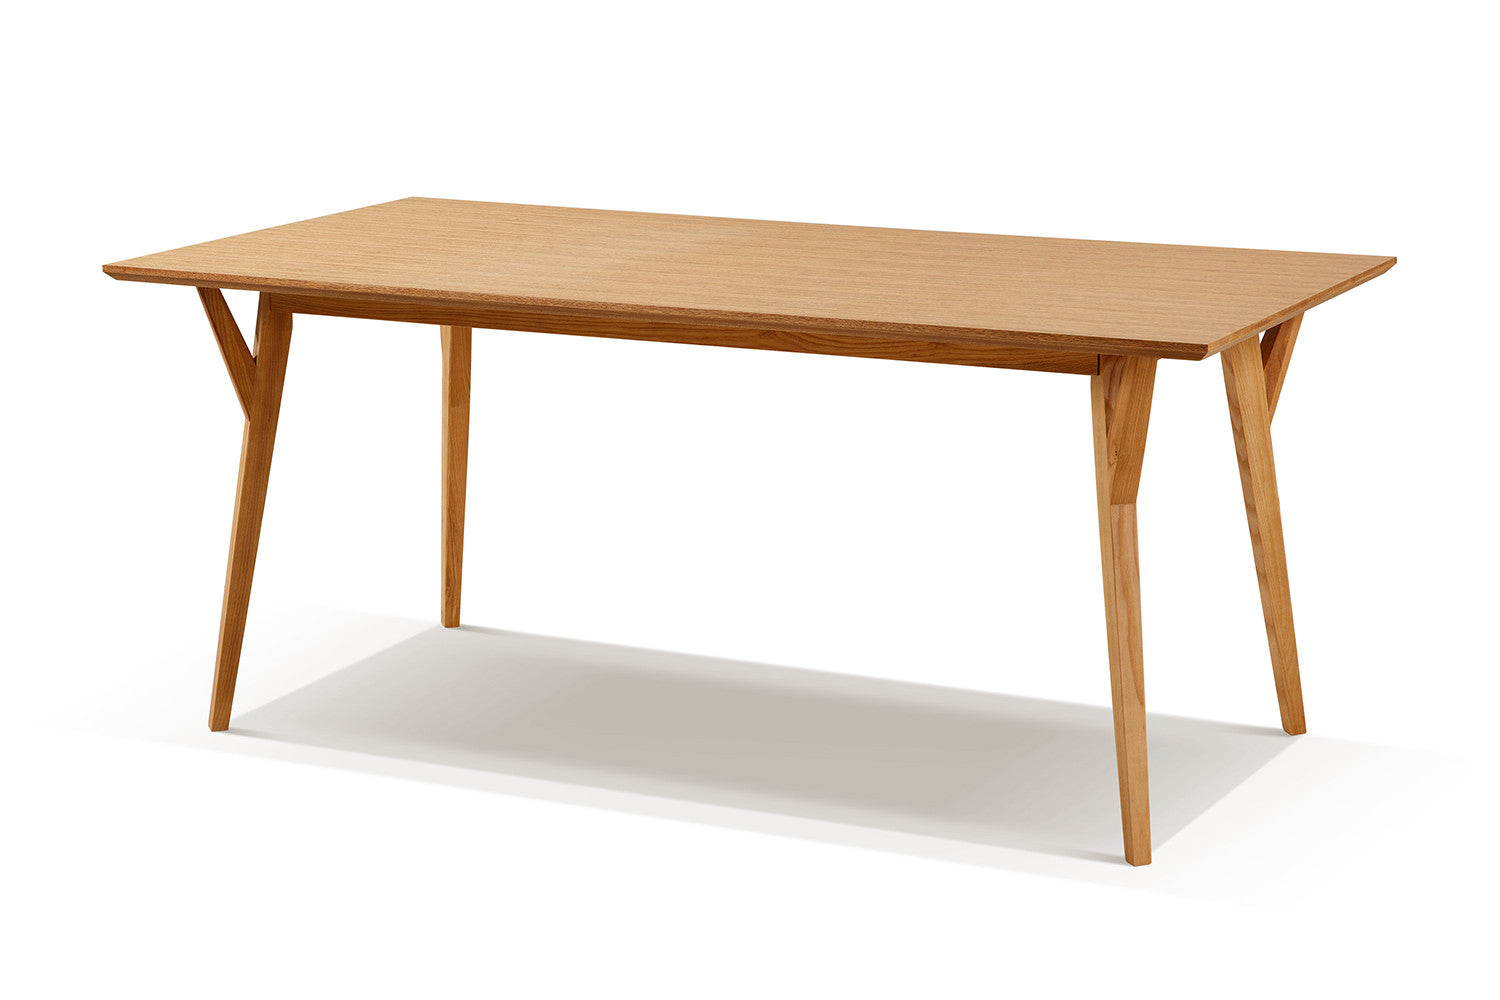 Table de salle manger scandinave en bois linth dewarens for Table a manger scandinave bois